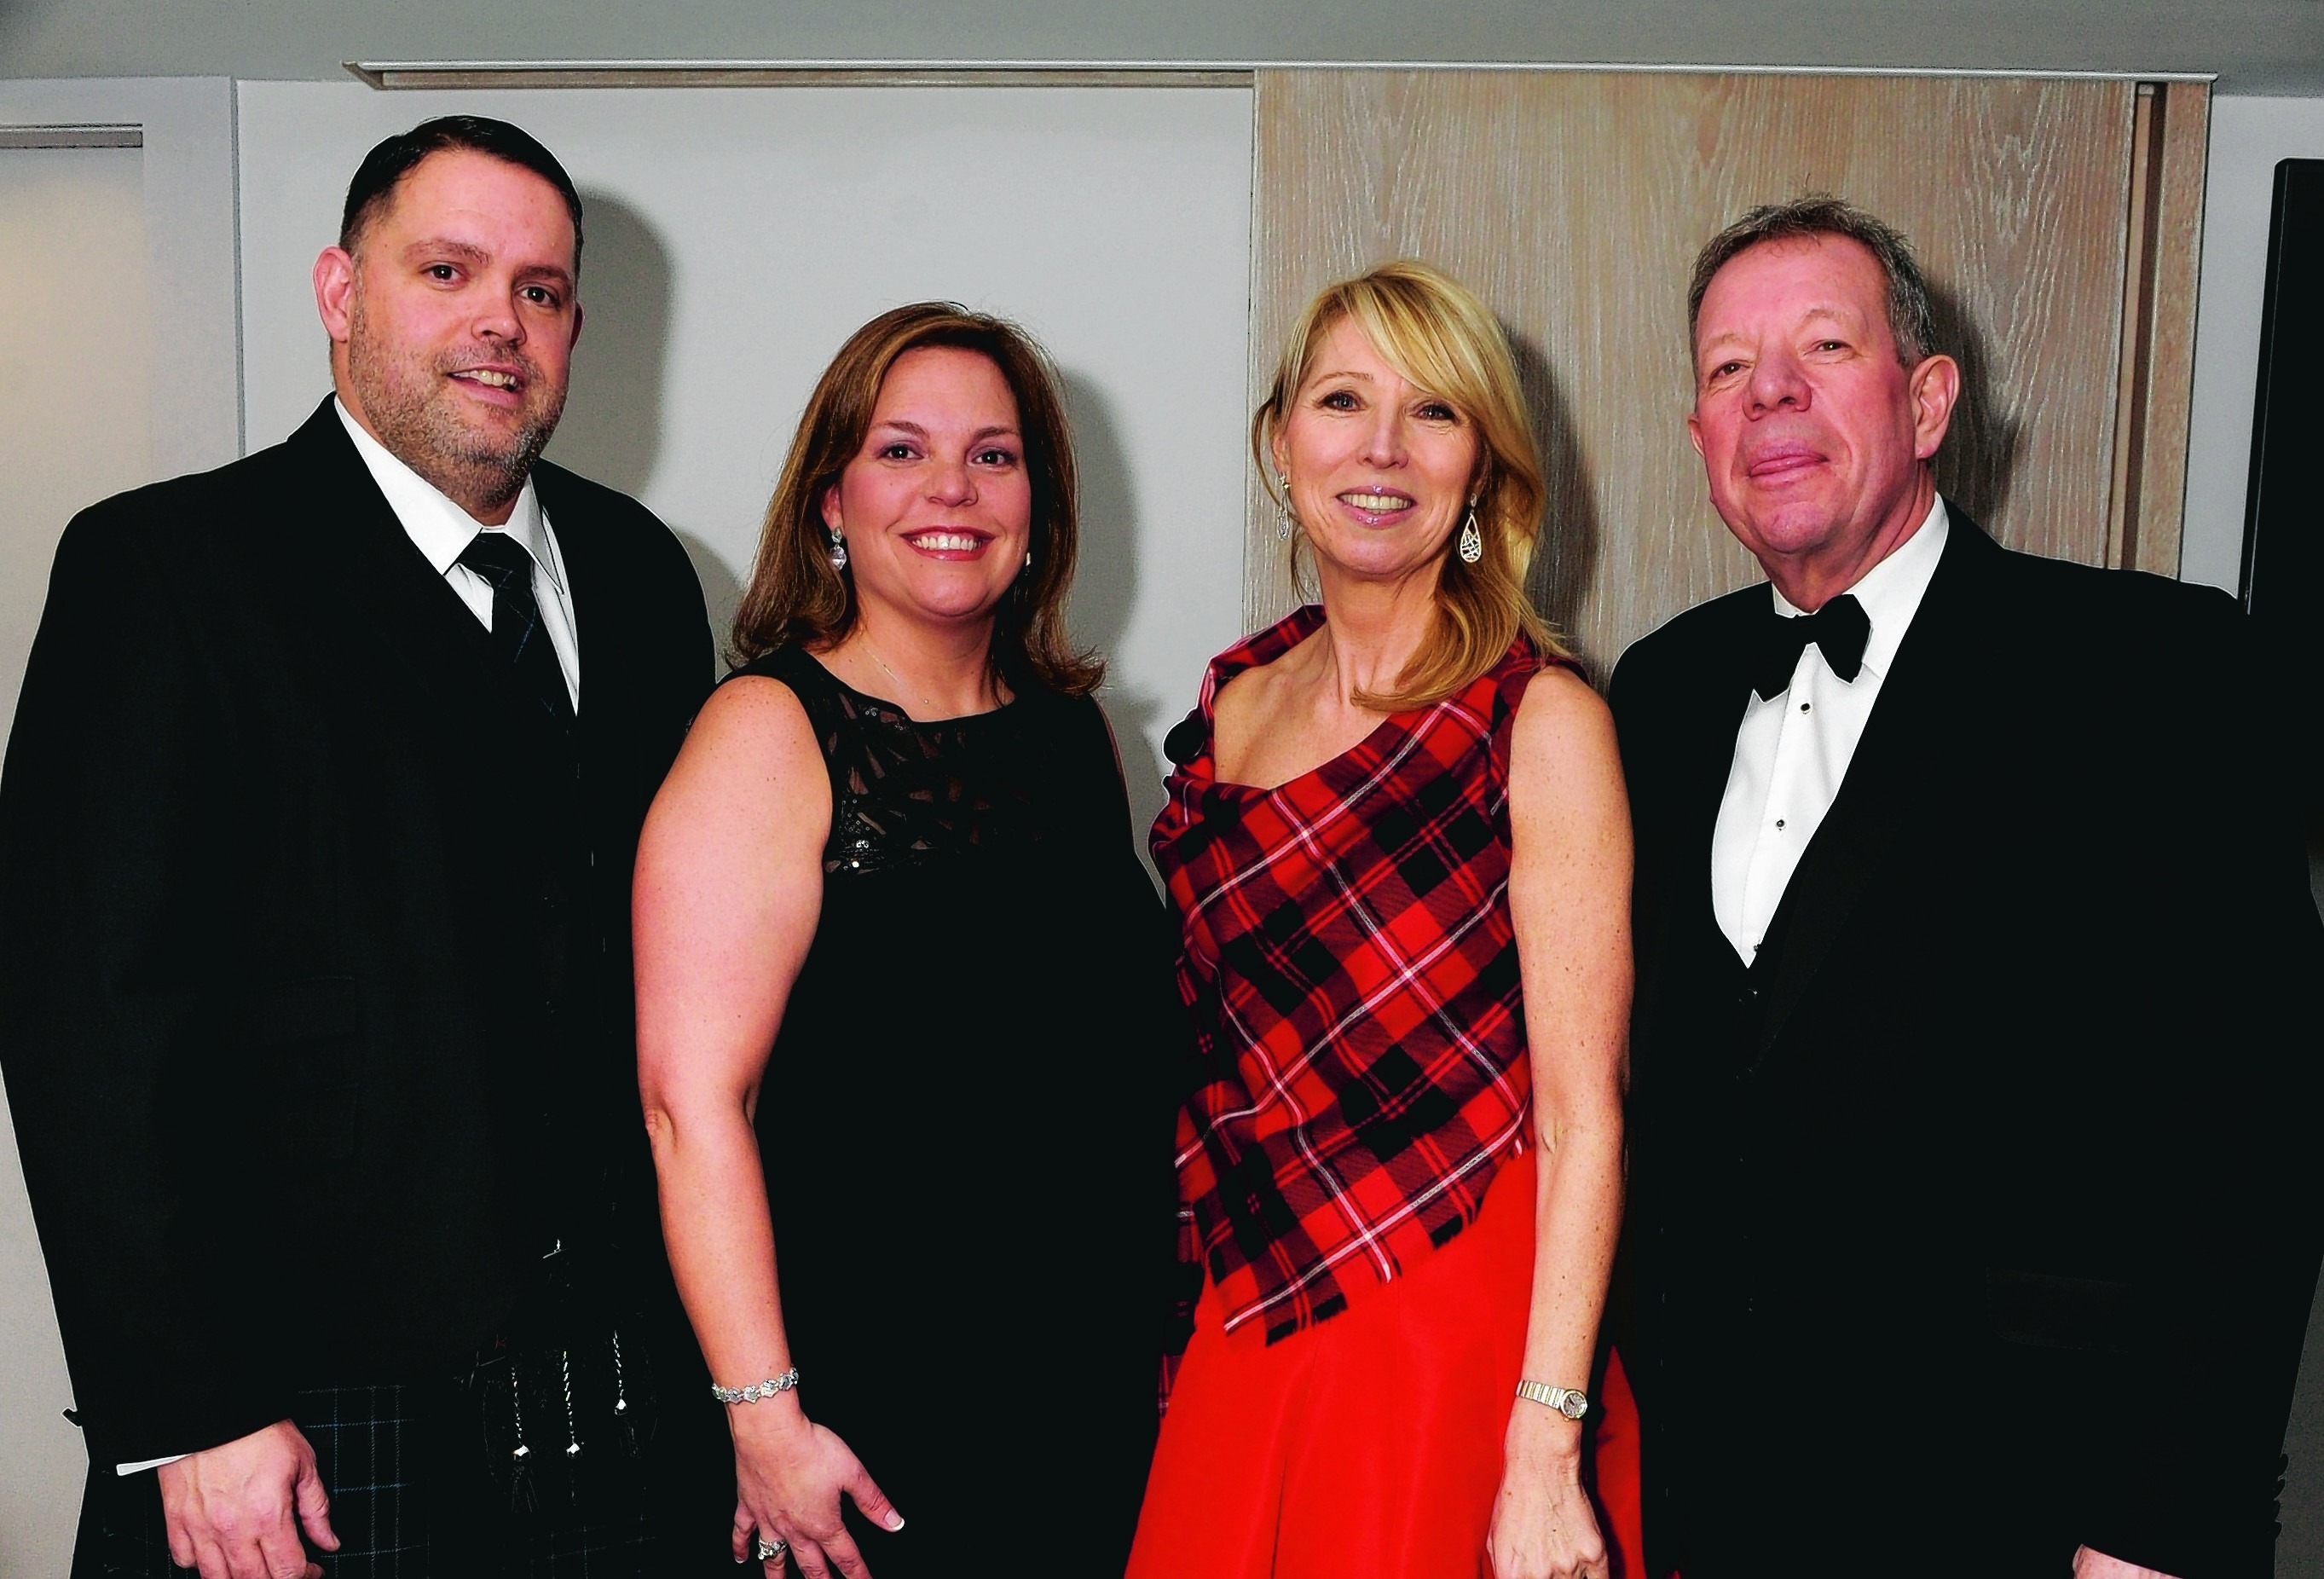 Terry and Misty Pierce, Karen and Mike Reilly.